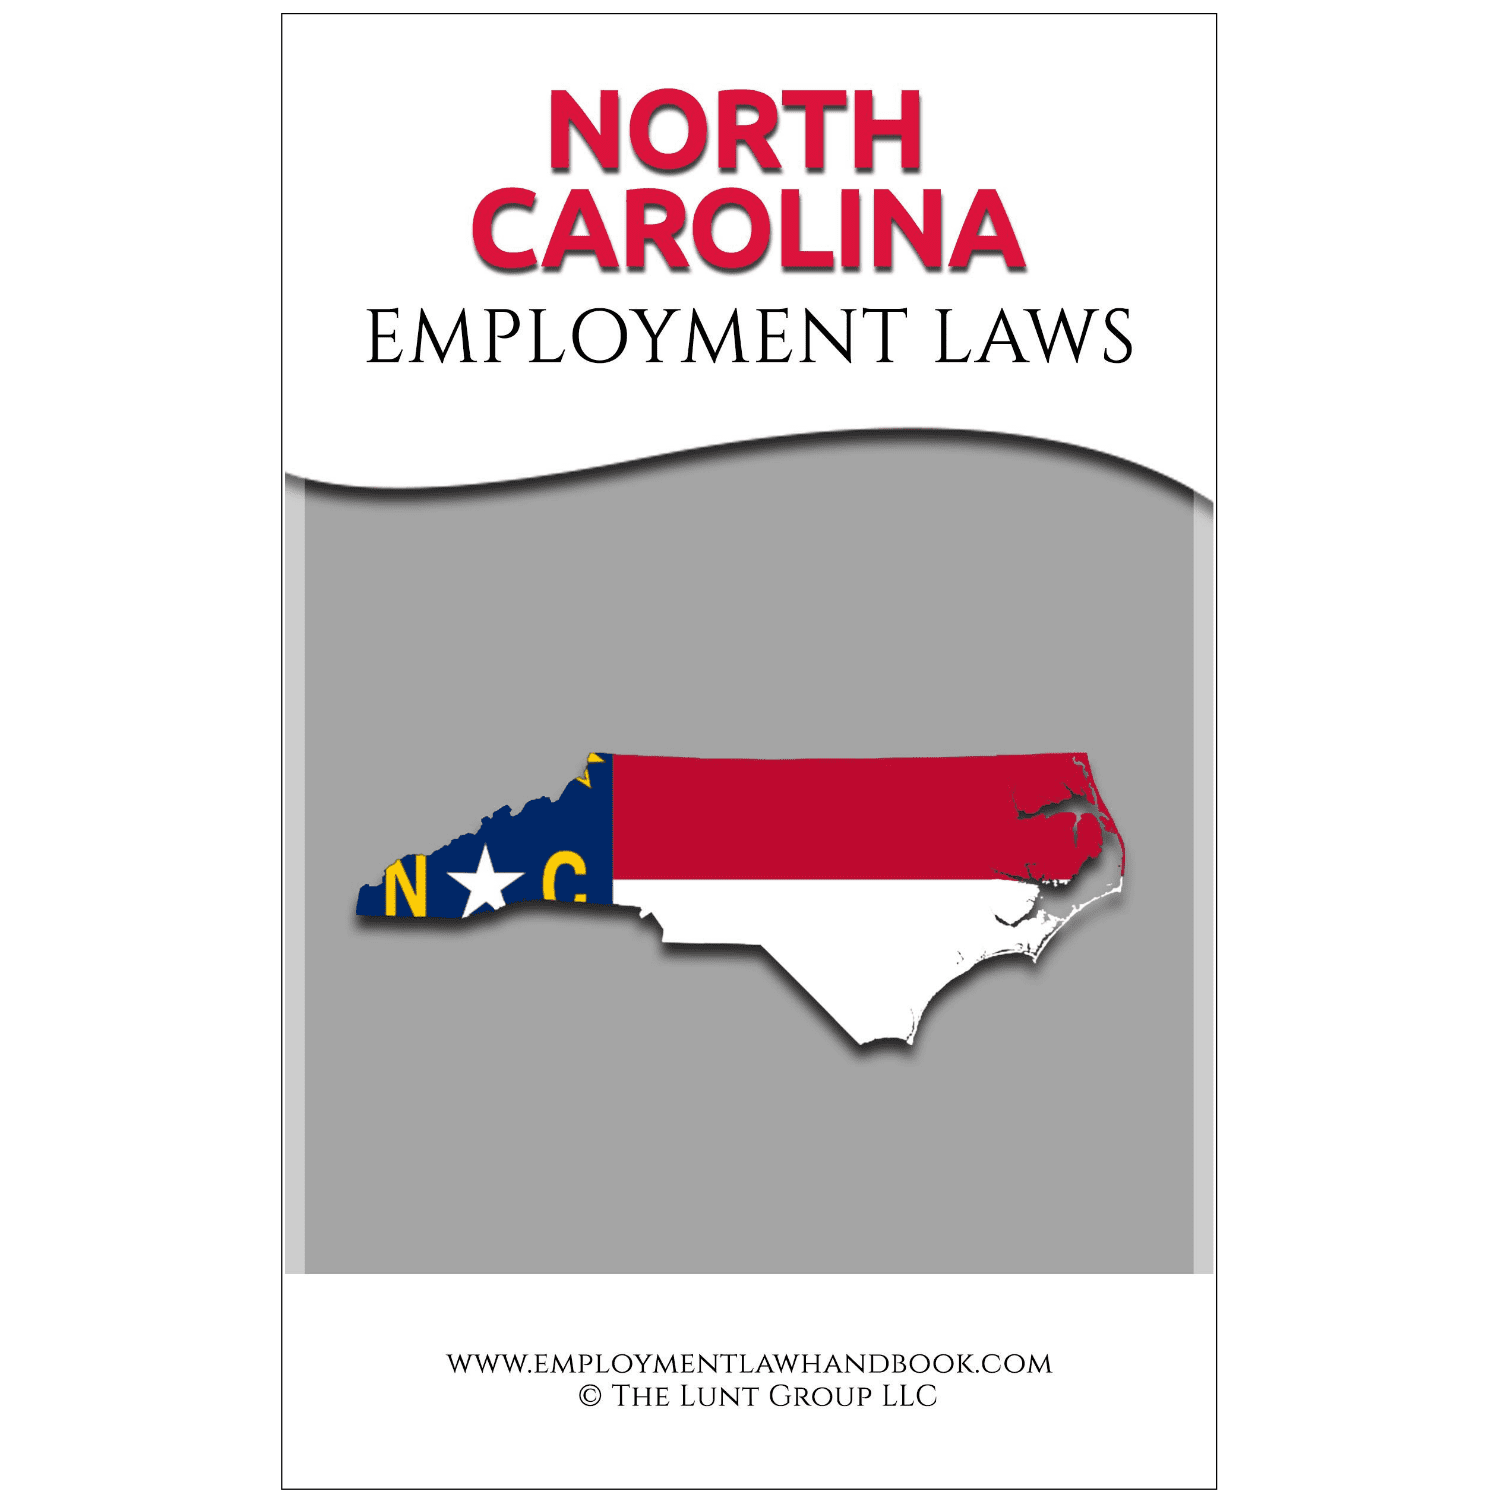 North_Carolina Employment Laws_sq